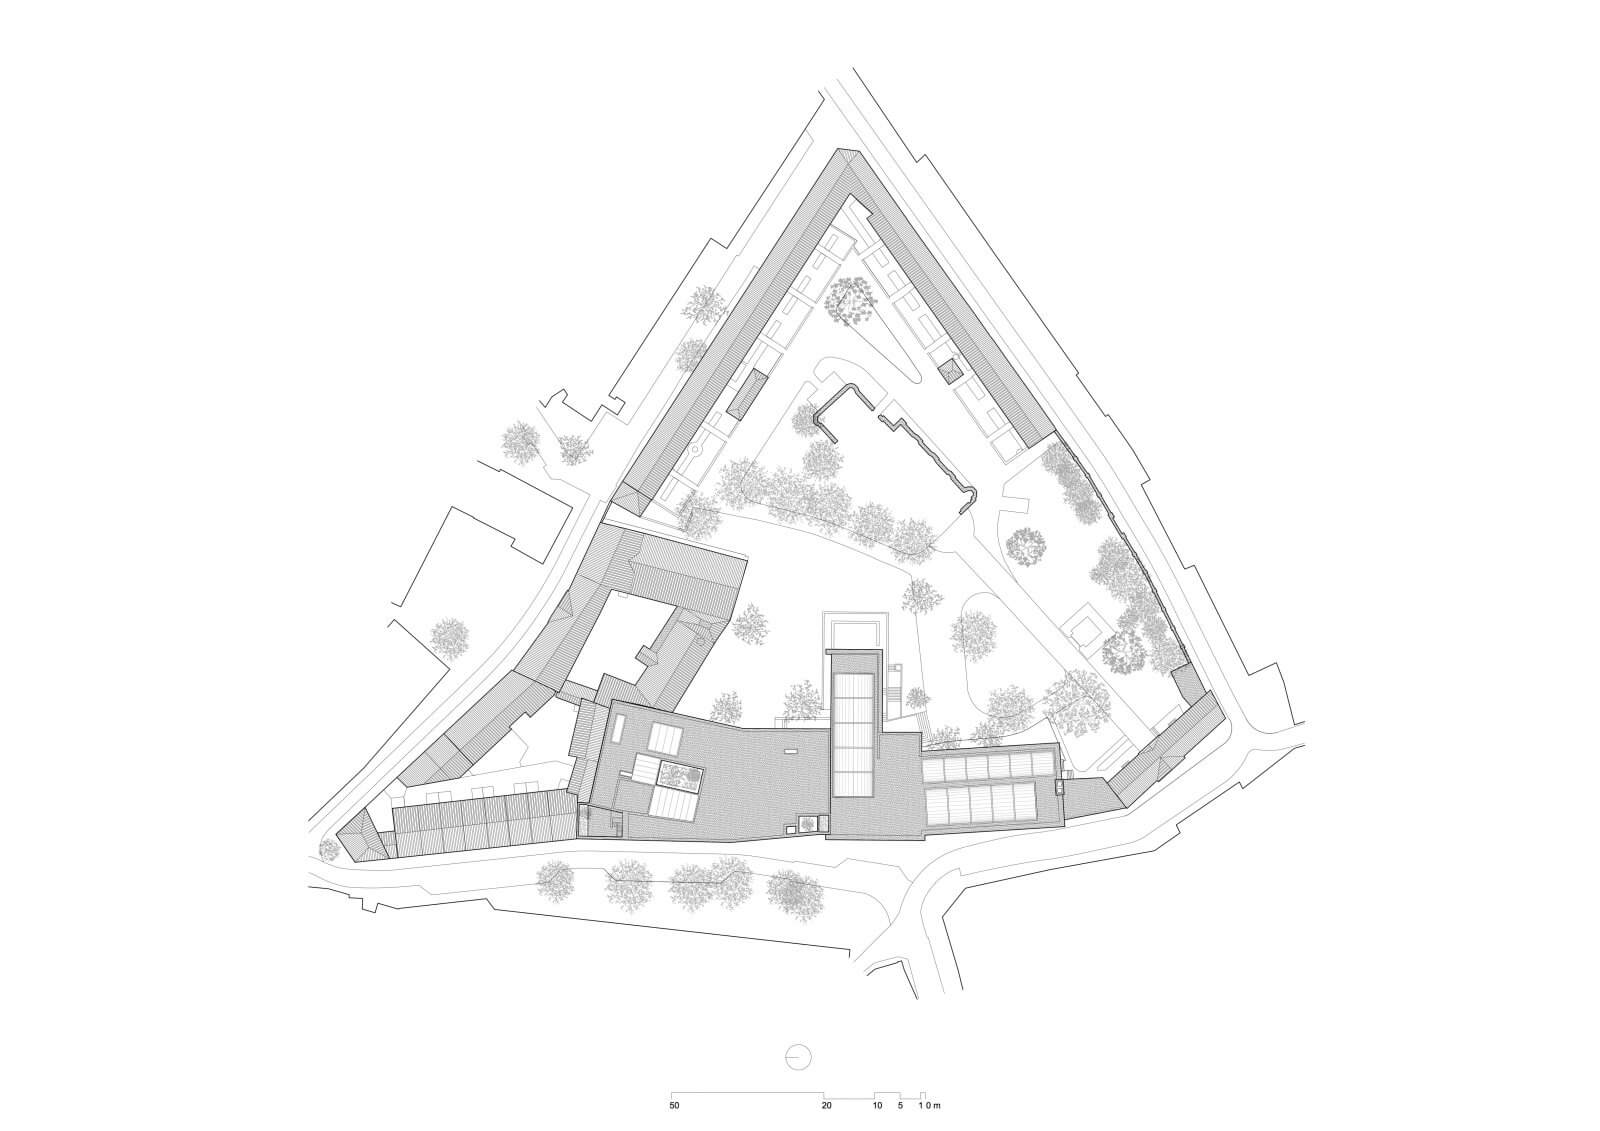 Z33  - 01 Z33 drawing site plan 1.750 A3 32